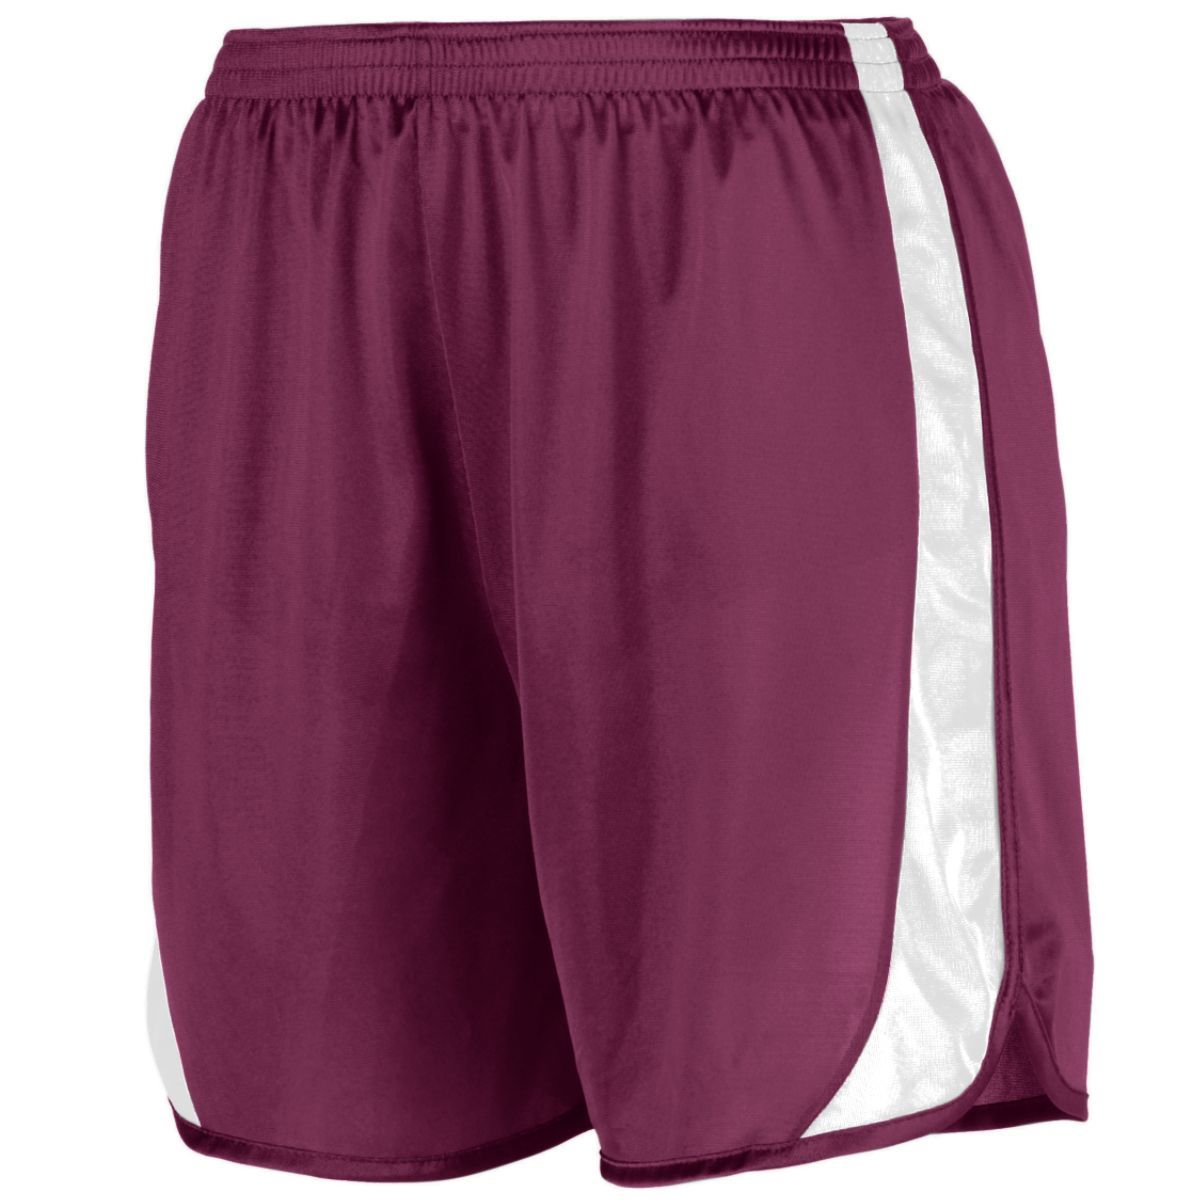 Youth Wicking Track Shorts With Side Insert - MAROON/WHITE